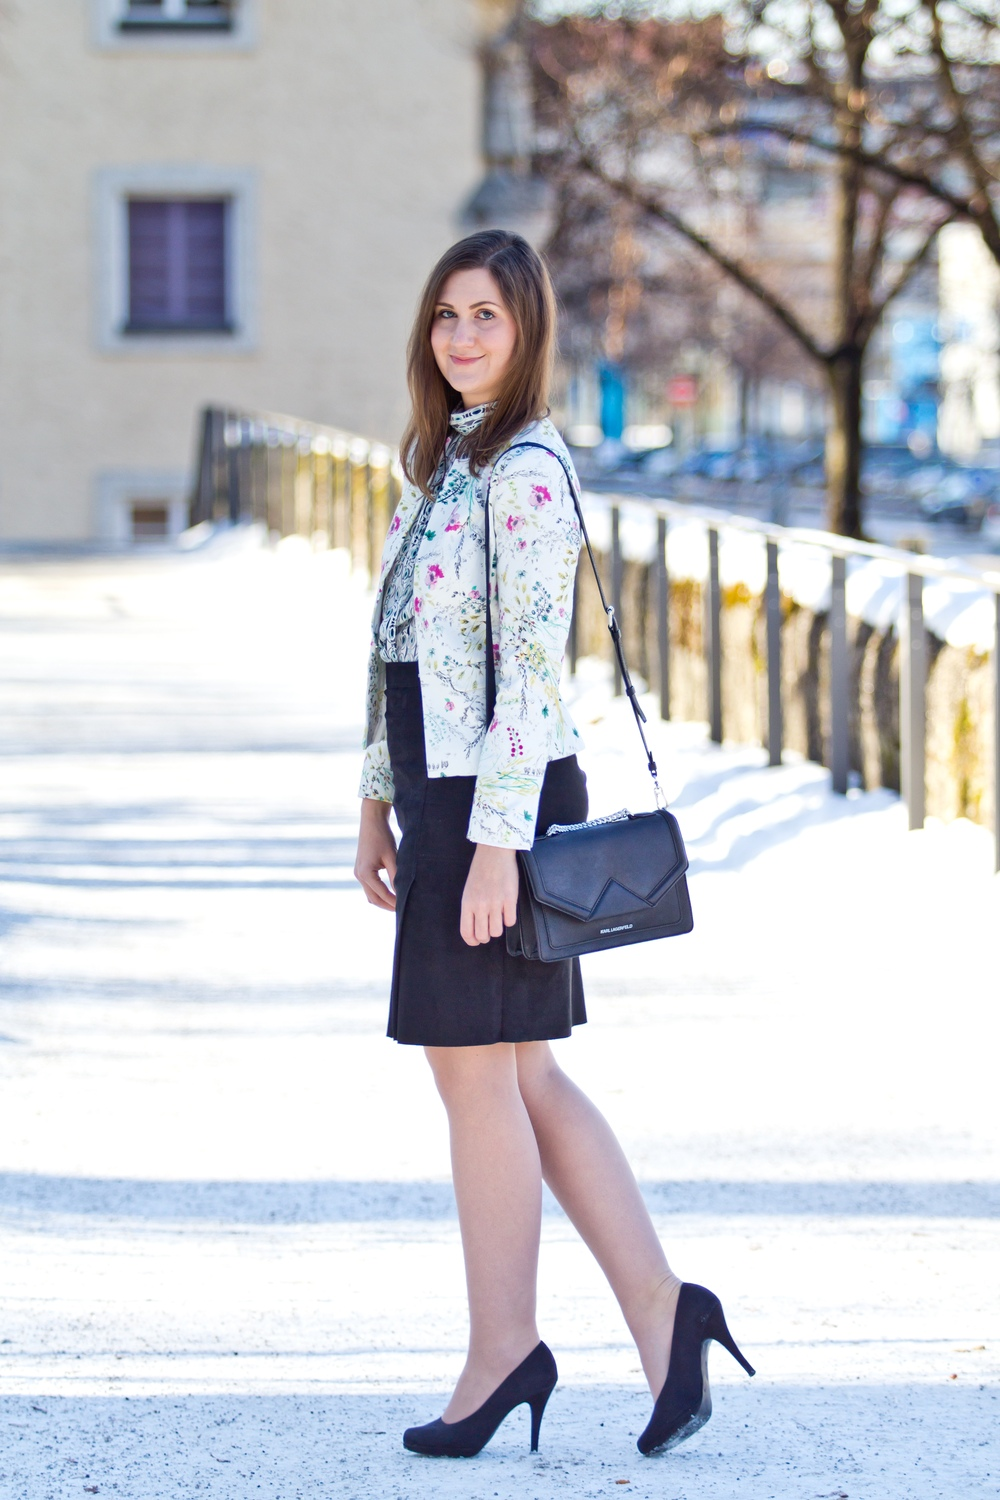 Muster-Mix Frühling Outfit Modeblog München Fashion Blog